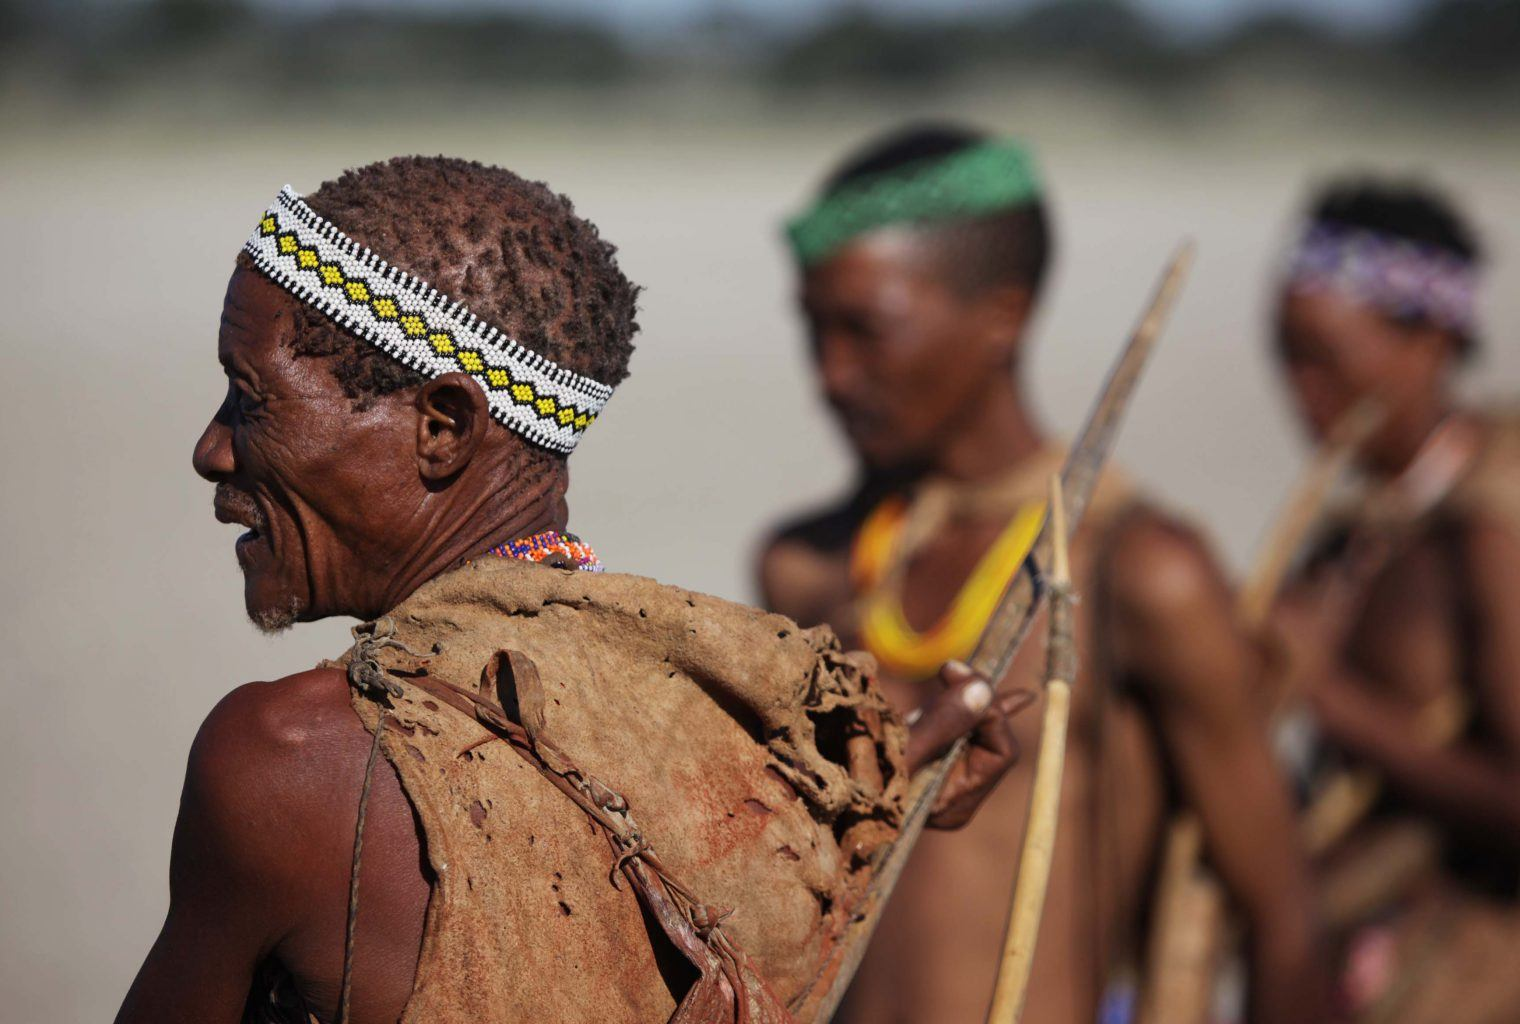 the culture of the bushmen of the kalahari Geographical location: kalahari desert, botswana, africa climactic description: the land receives about 8 inches of rain per year temperatures vary from 10-115f winters are freezing and summers are burning hot.